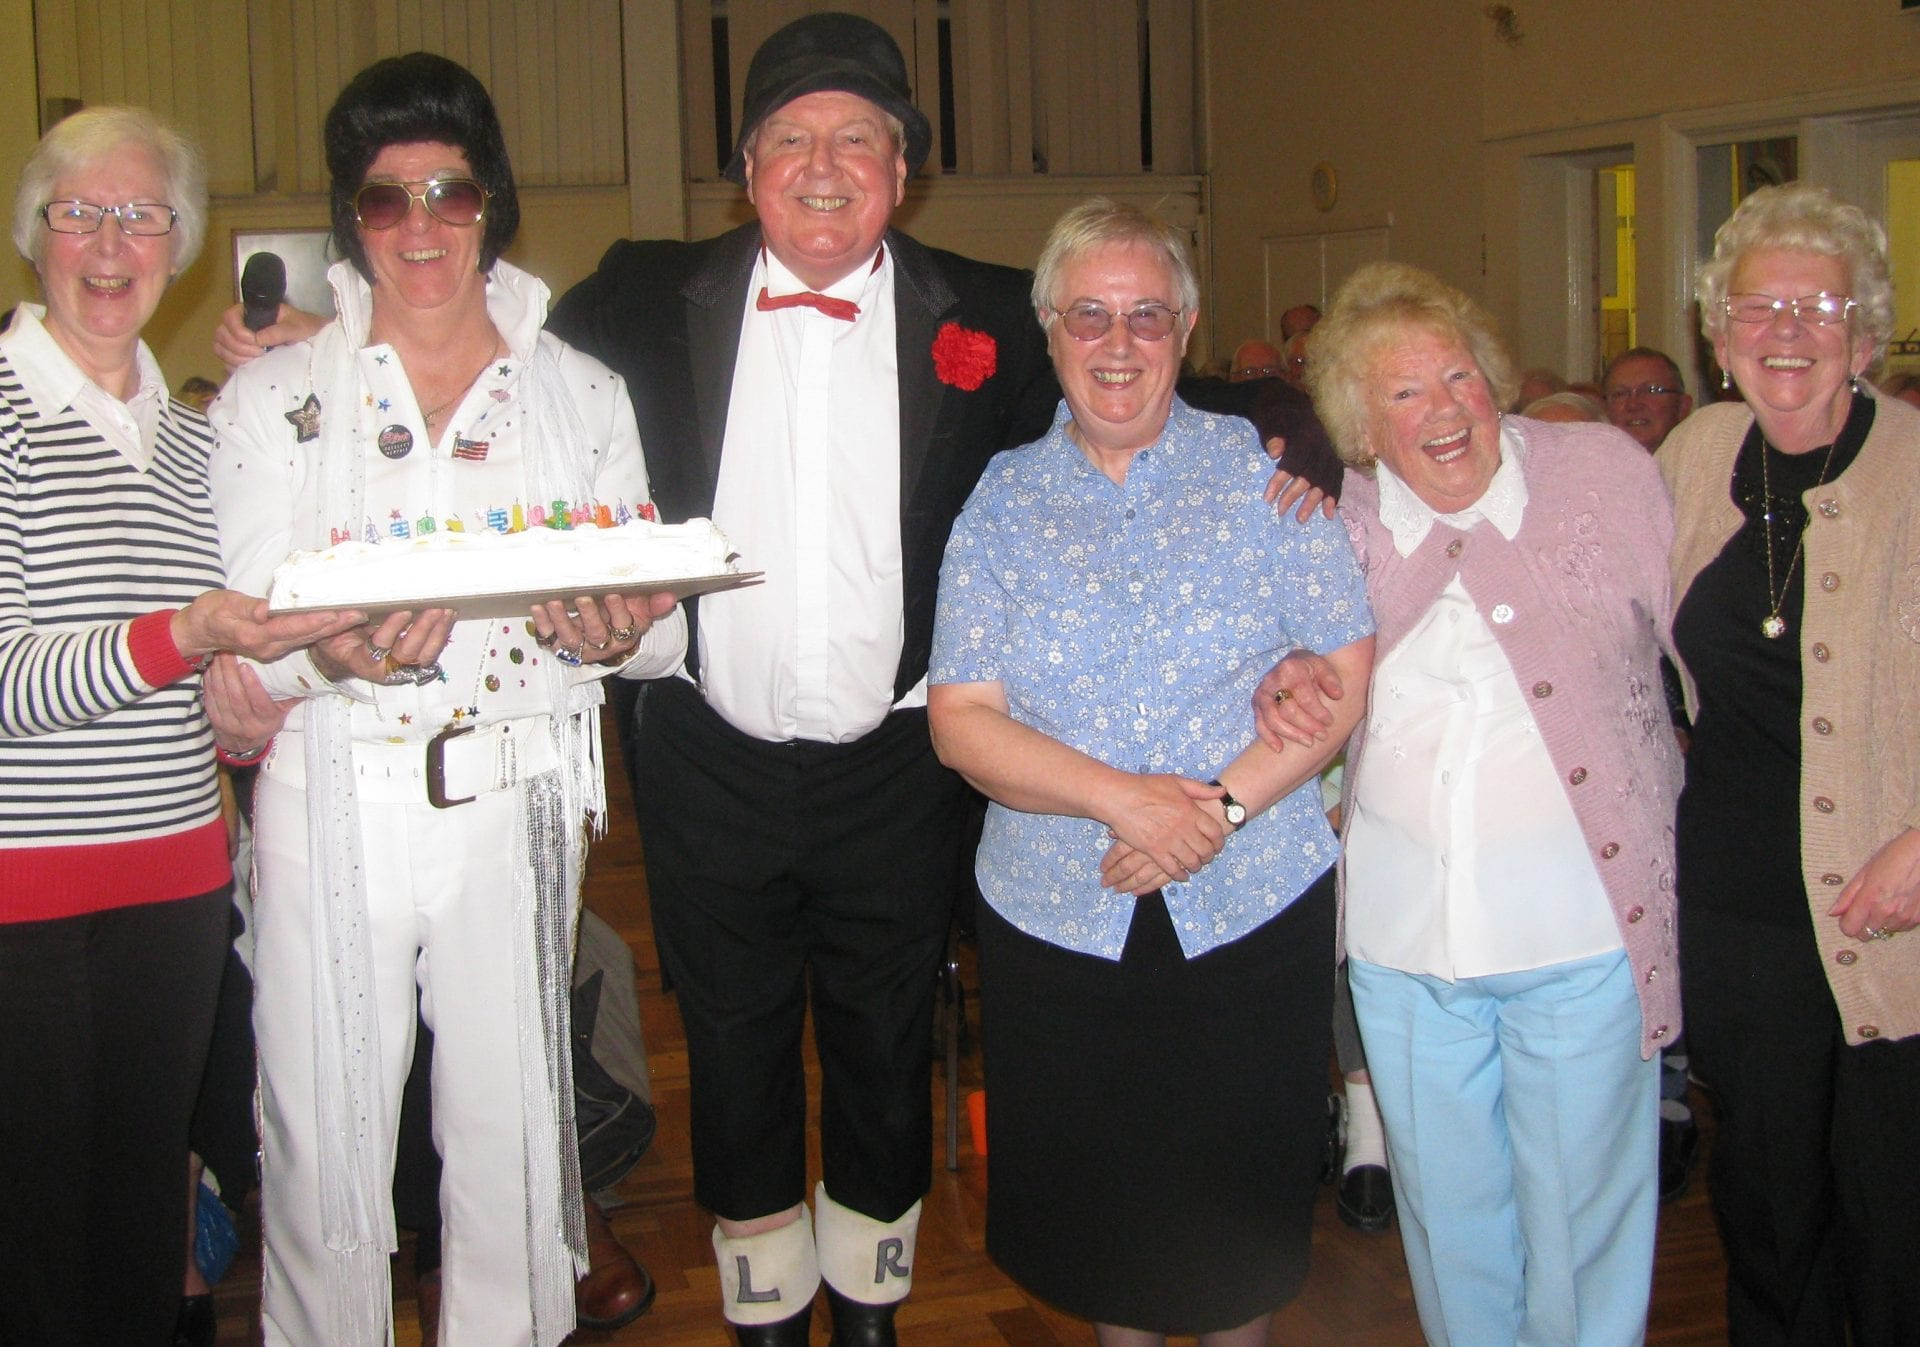 Jimmy Cricket, with his birthday cake, Jim Nicholas and the local organising committee for the event